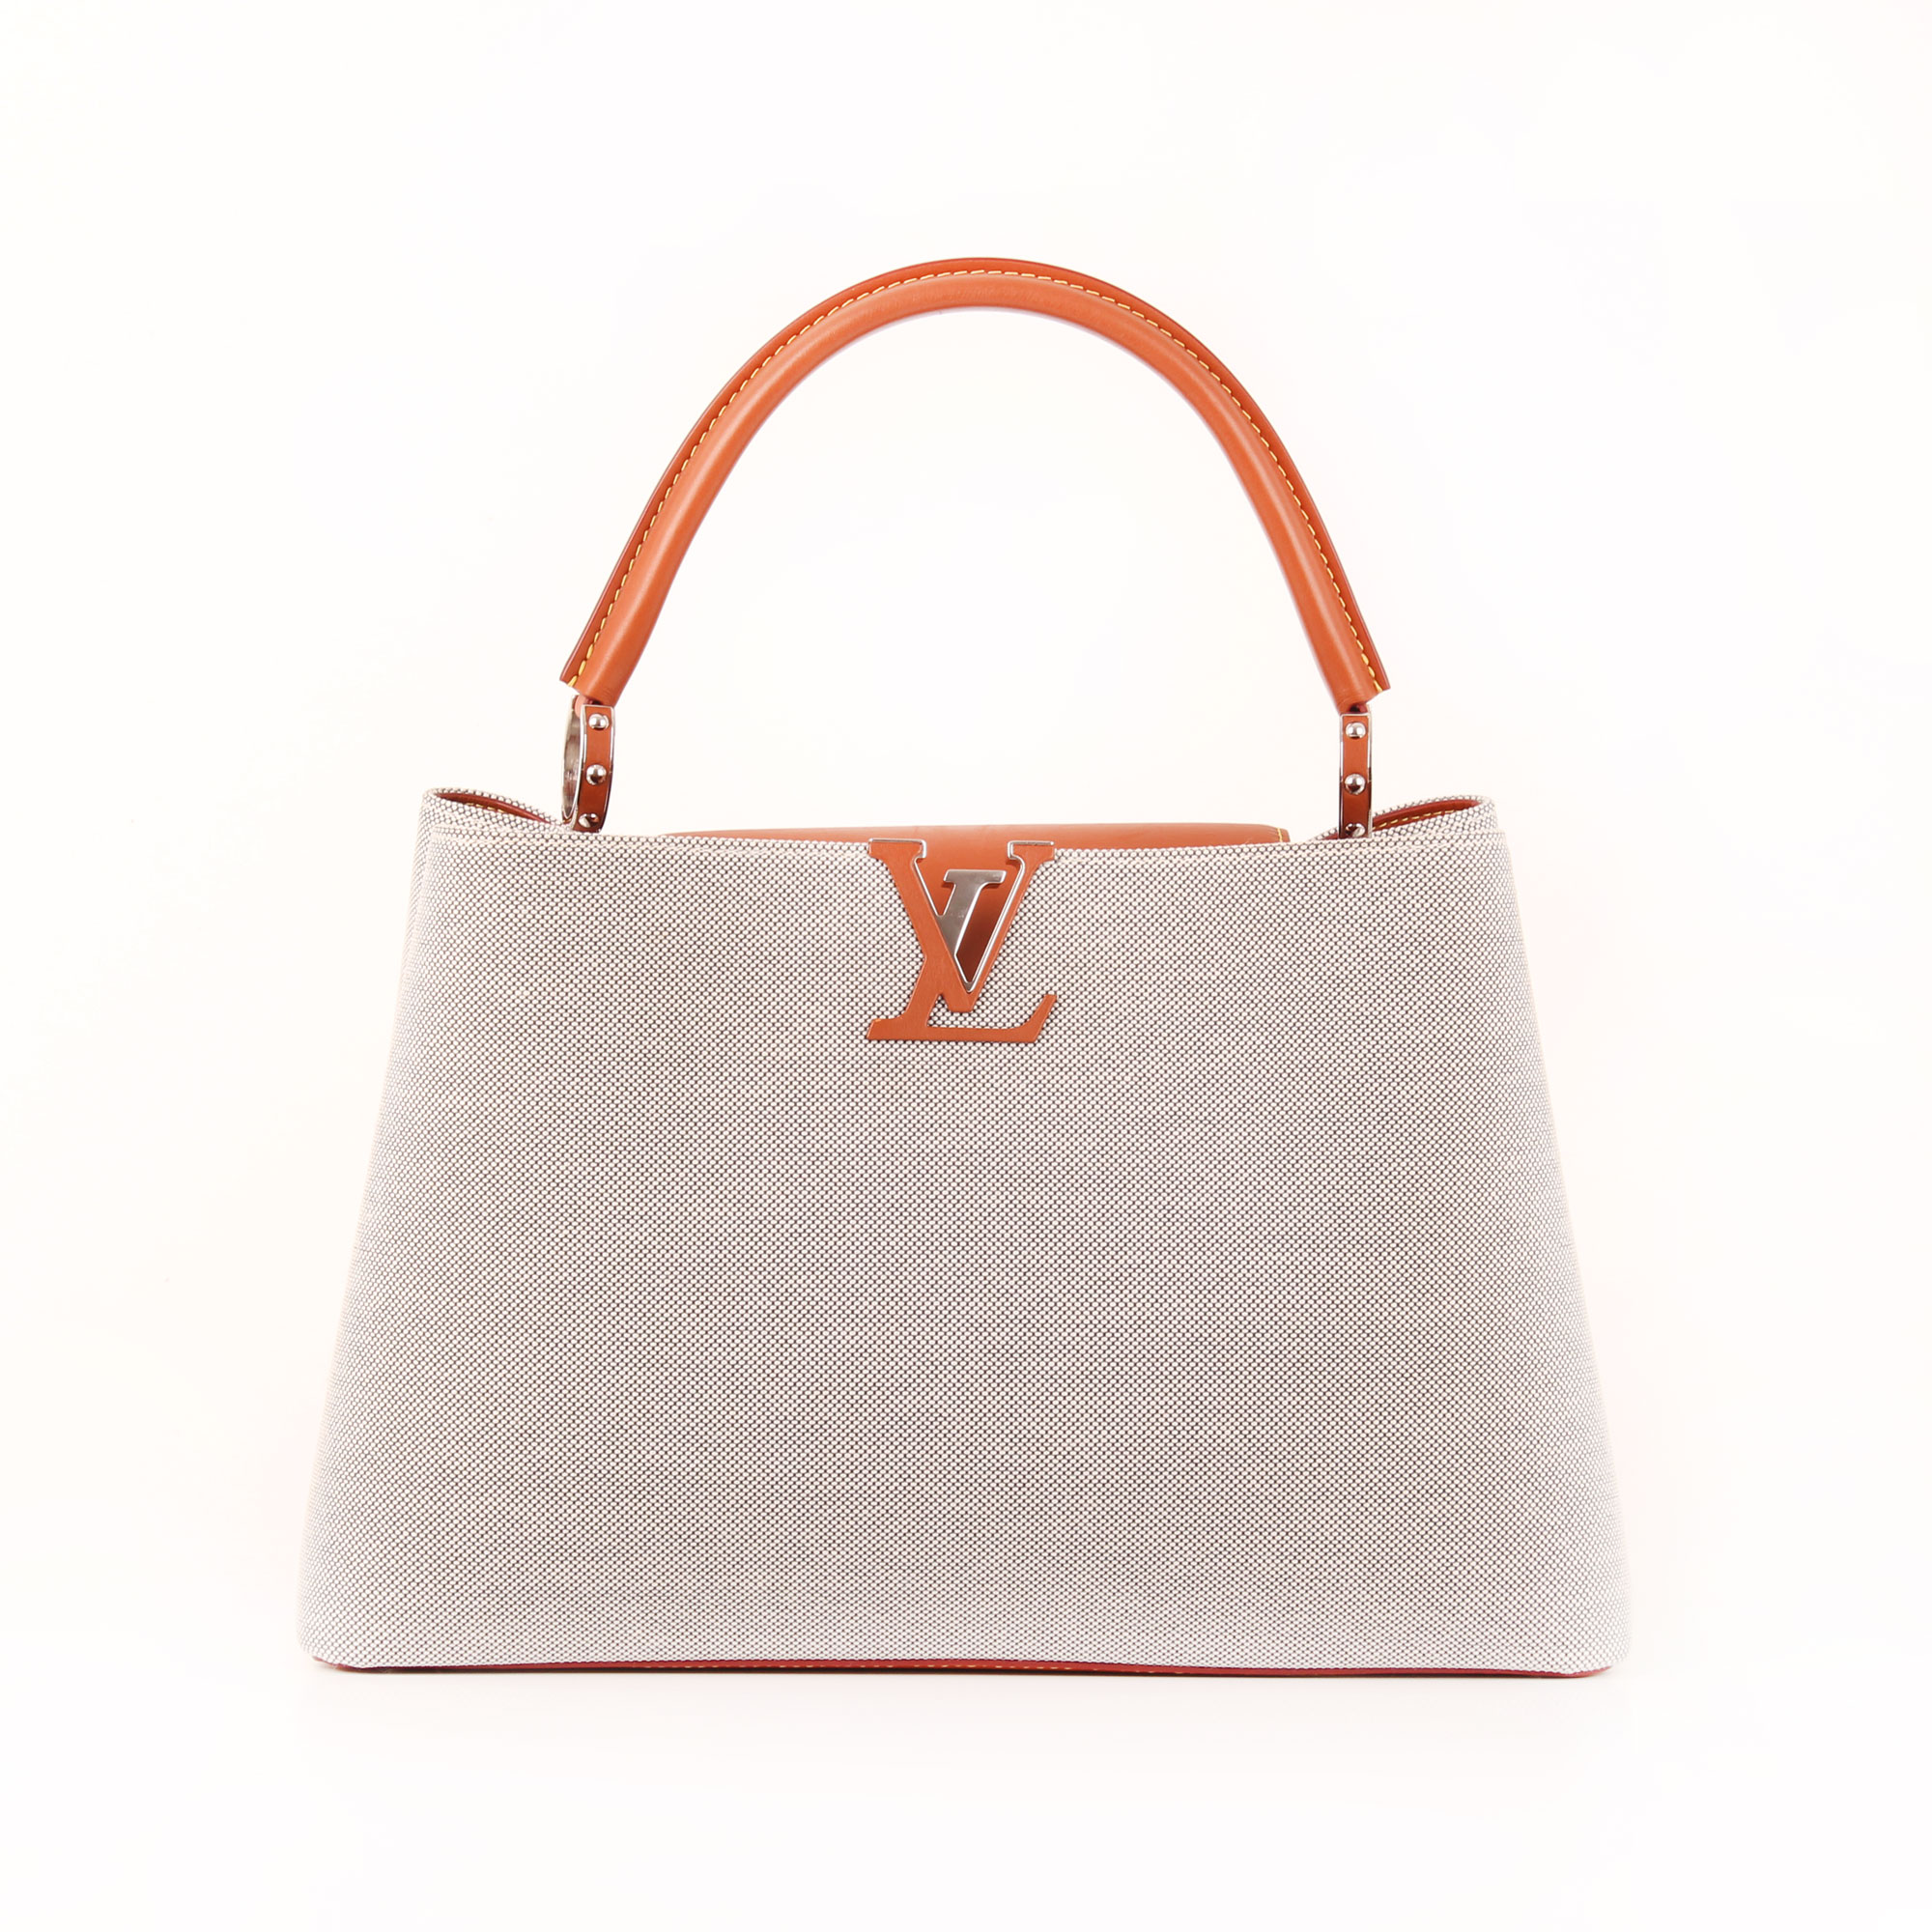 ff3fddc6a Front image of louis vuitton bag capucines mm mateo leather grey canvas